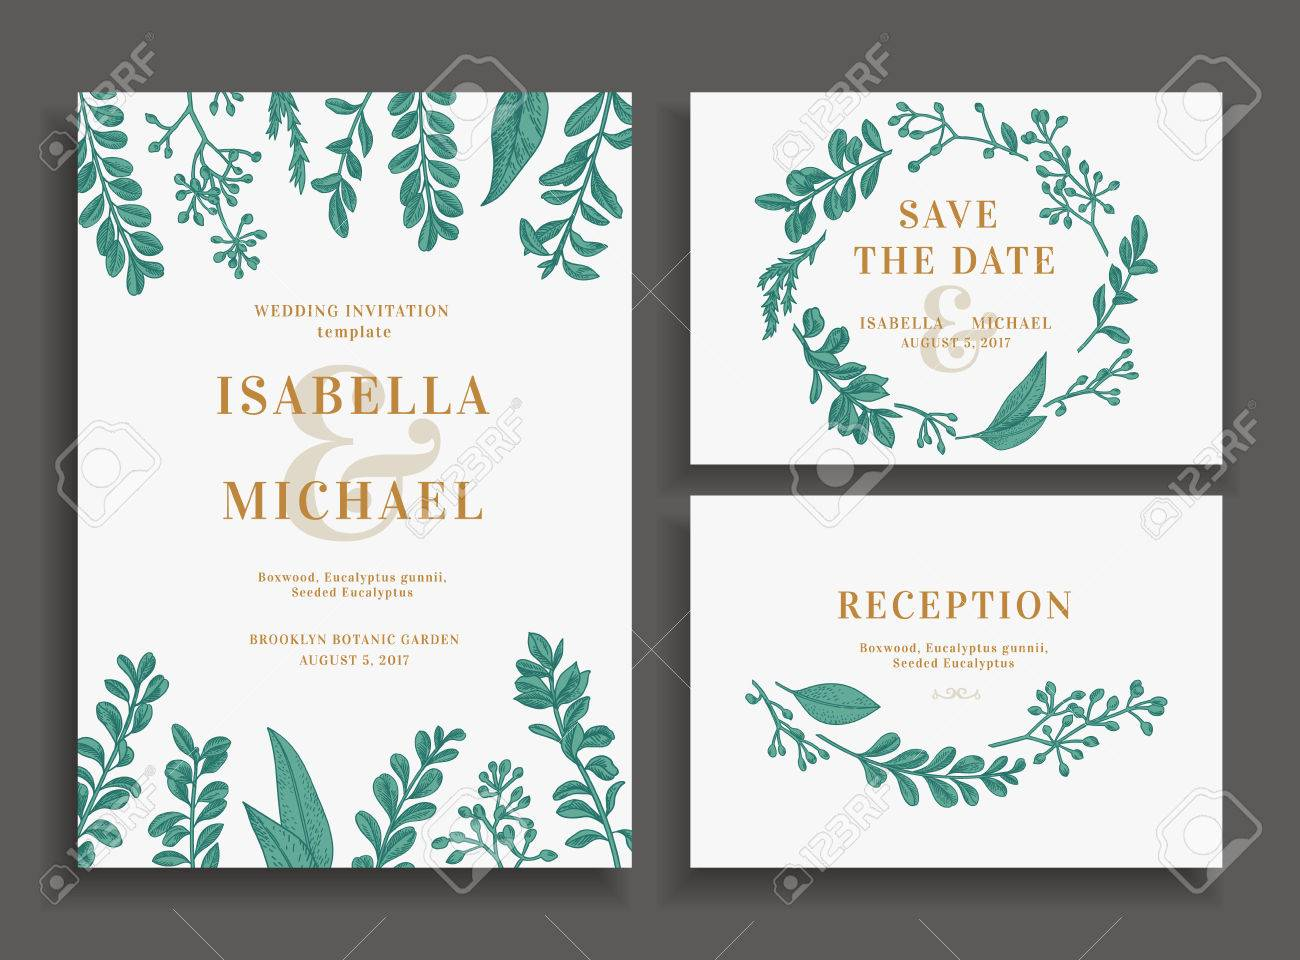 Vintage Wedding Set With Greenery Wedding Invitation Save The